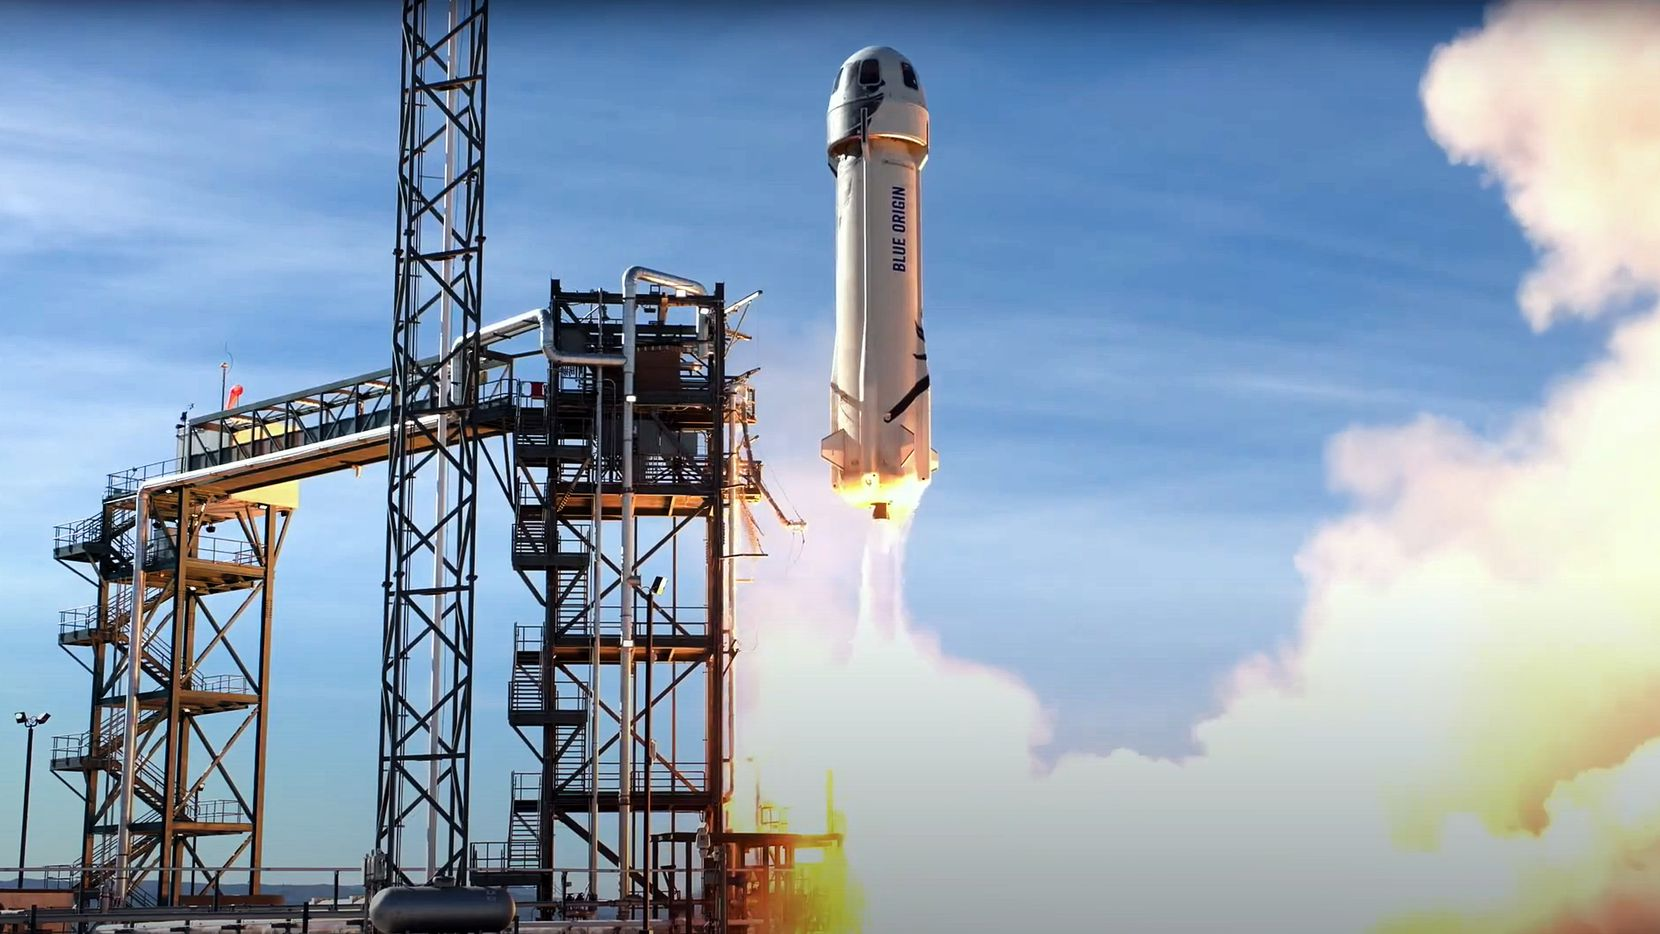 A video frame shows Blue Origin successfully completingits14thmission to space and back today for the New Shepard program.  This flight took place January 14, 2021 at Blue Origin's Launch SiteOne in Van Horn, Texas.